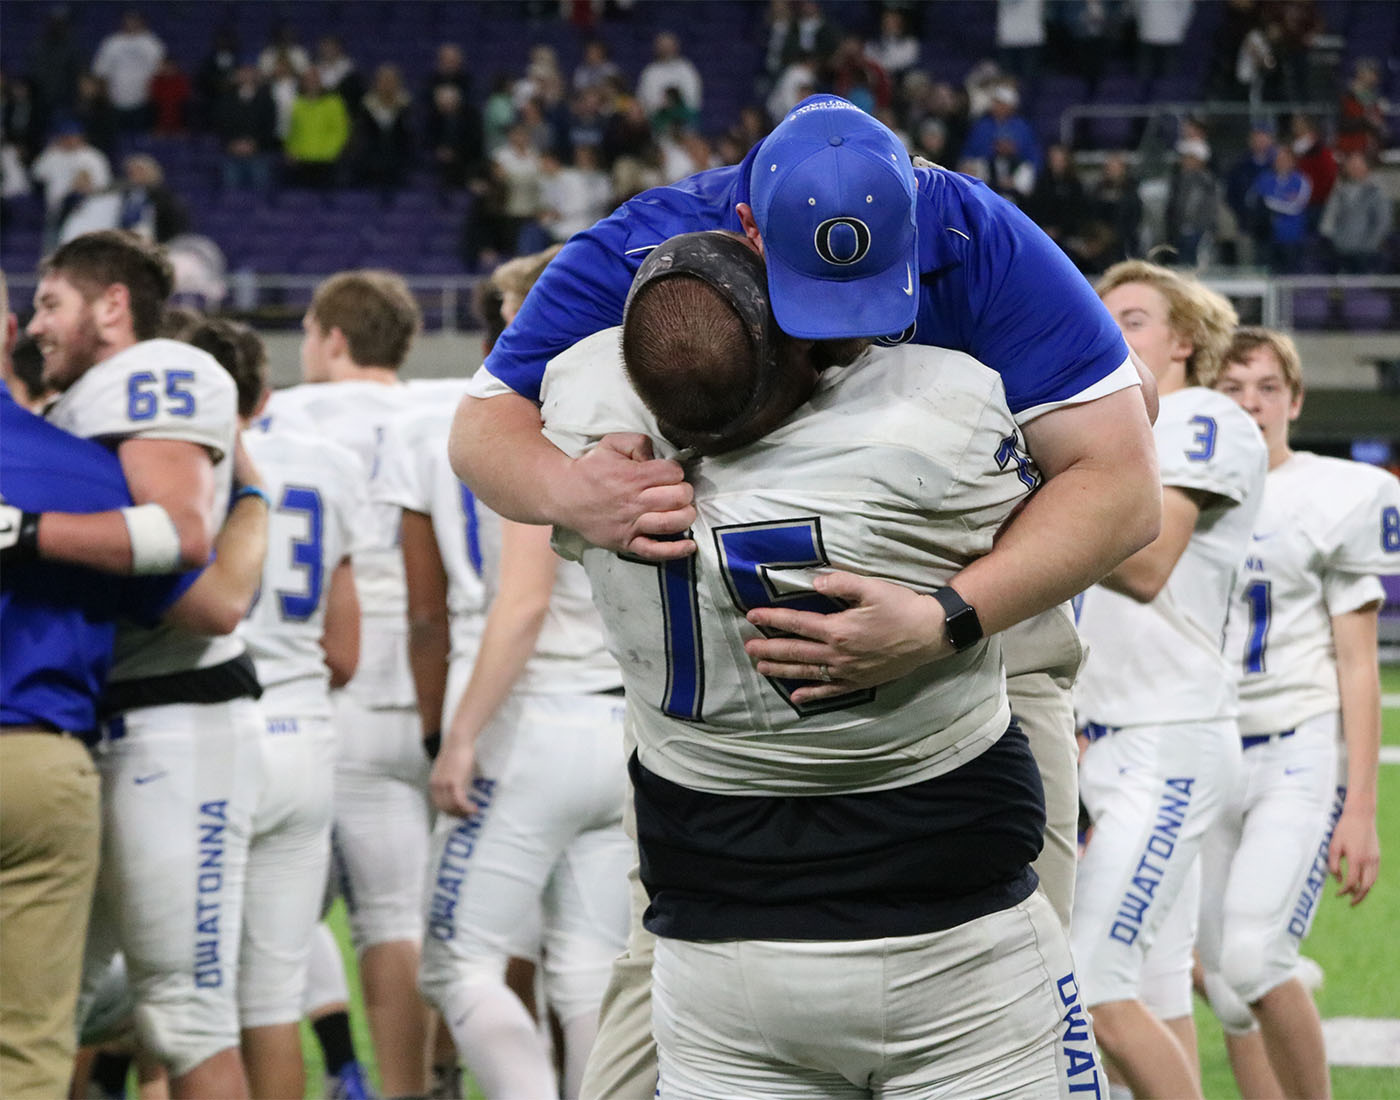 Chris Lewis lifts up Coach Johnson in celebration after the title game. Lewis will appear at the All-State Game on Saturday, Dec. 15